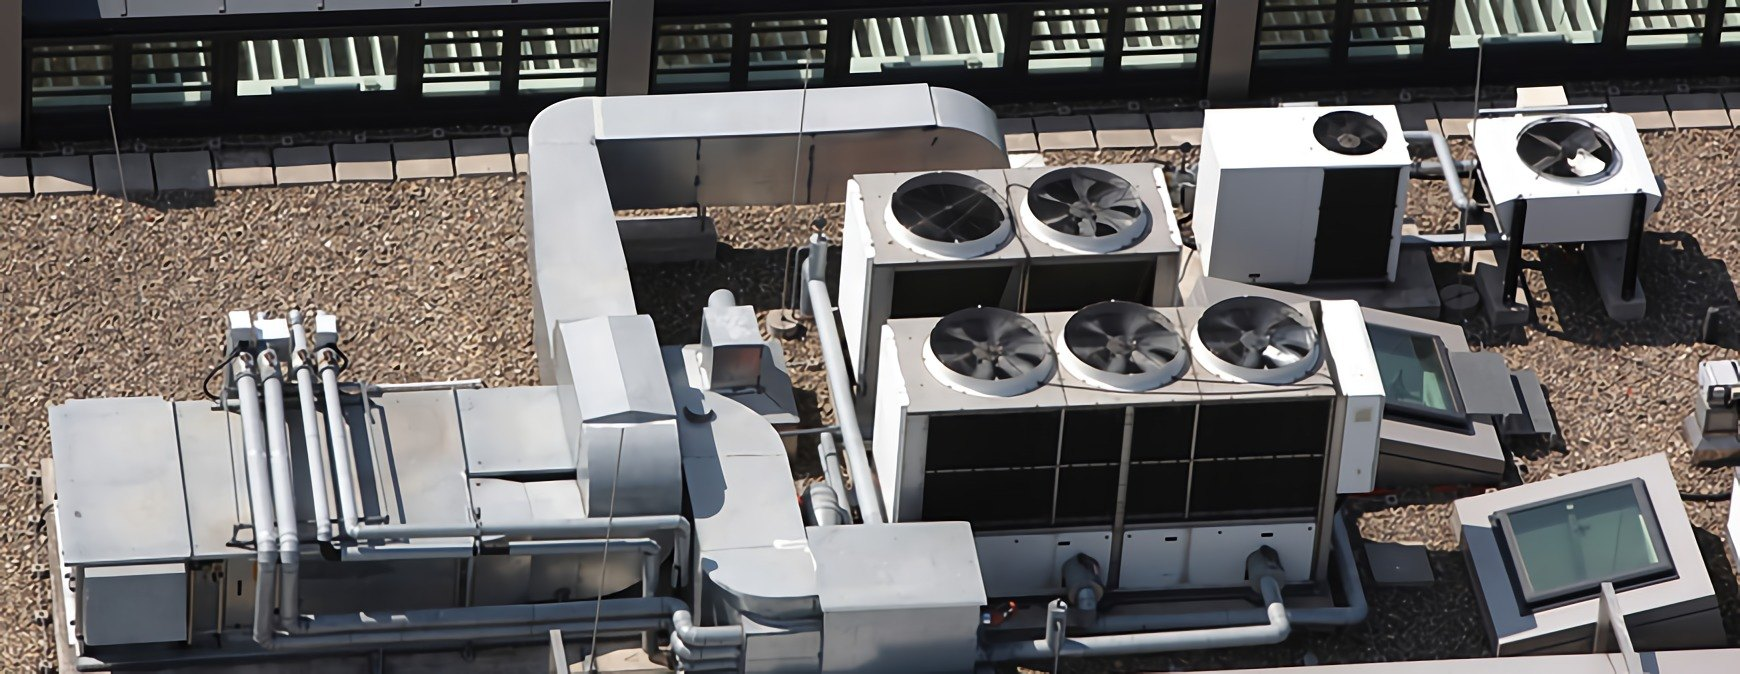 hvac cooling load